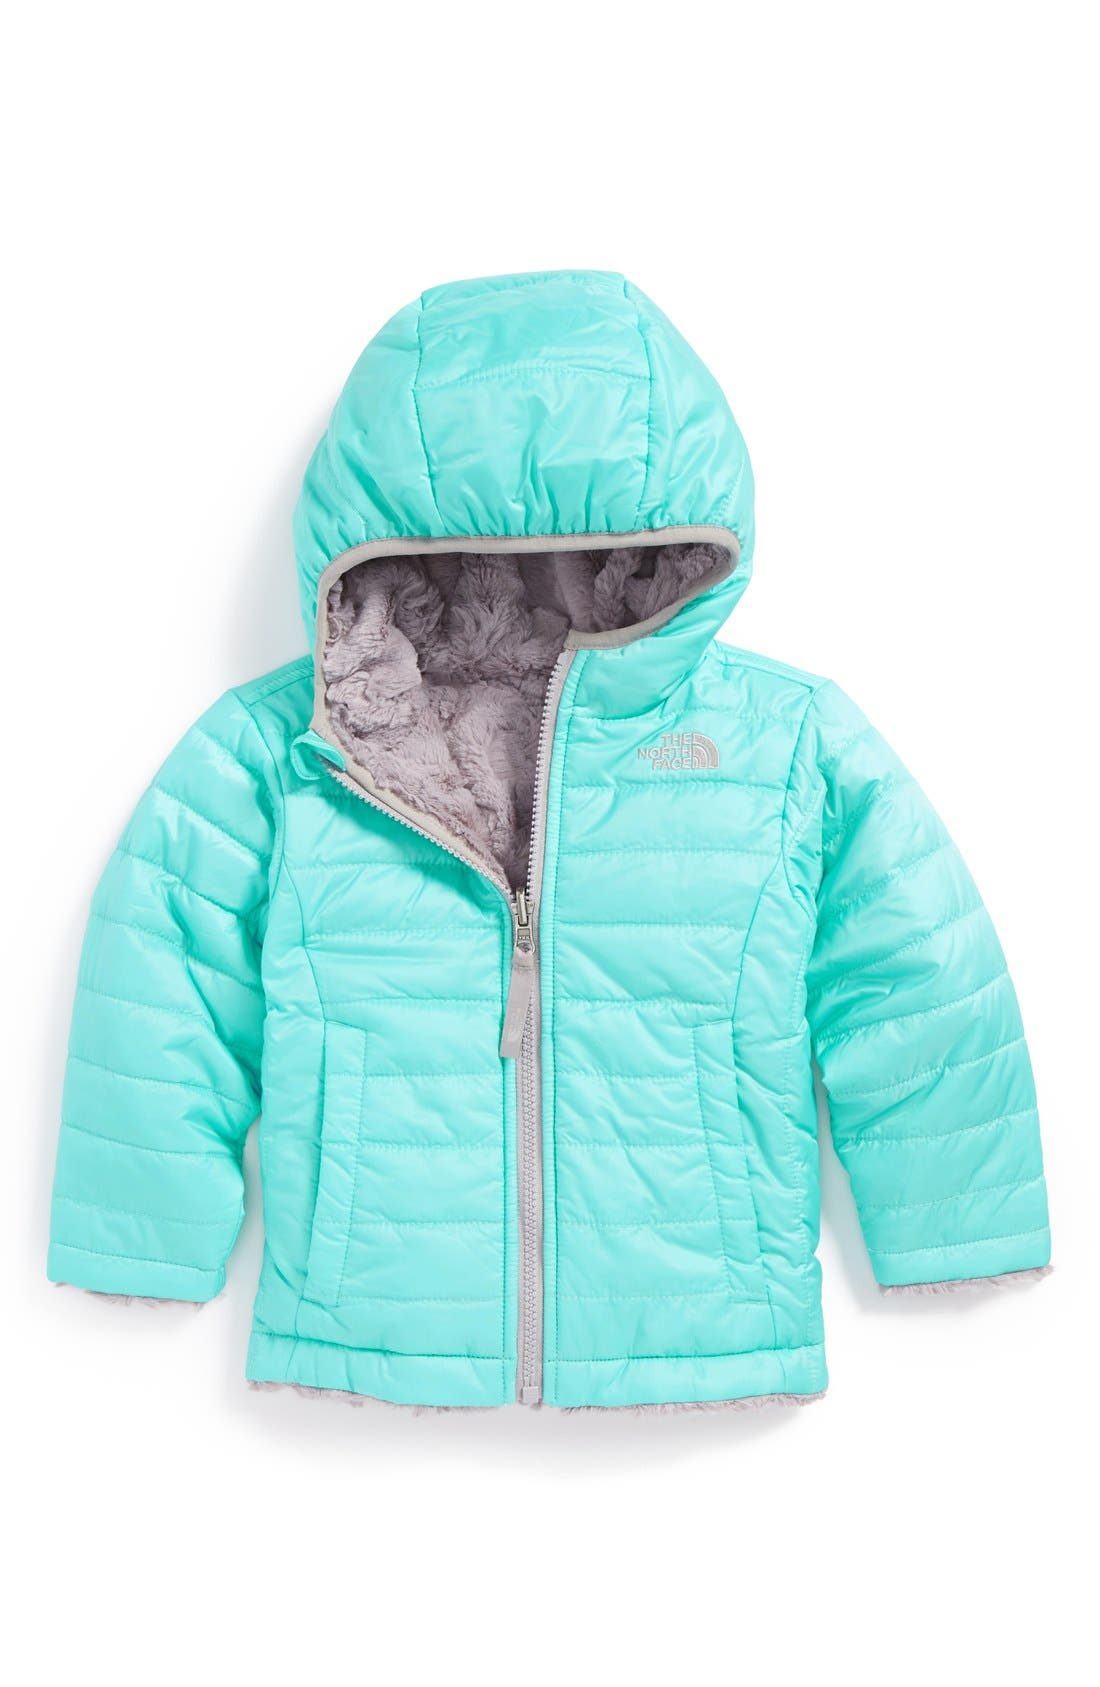 Main Image - The North Face Mossbud Swirl Water Repellent Reversible Jacket (Toddler Girls)